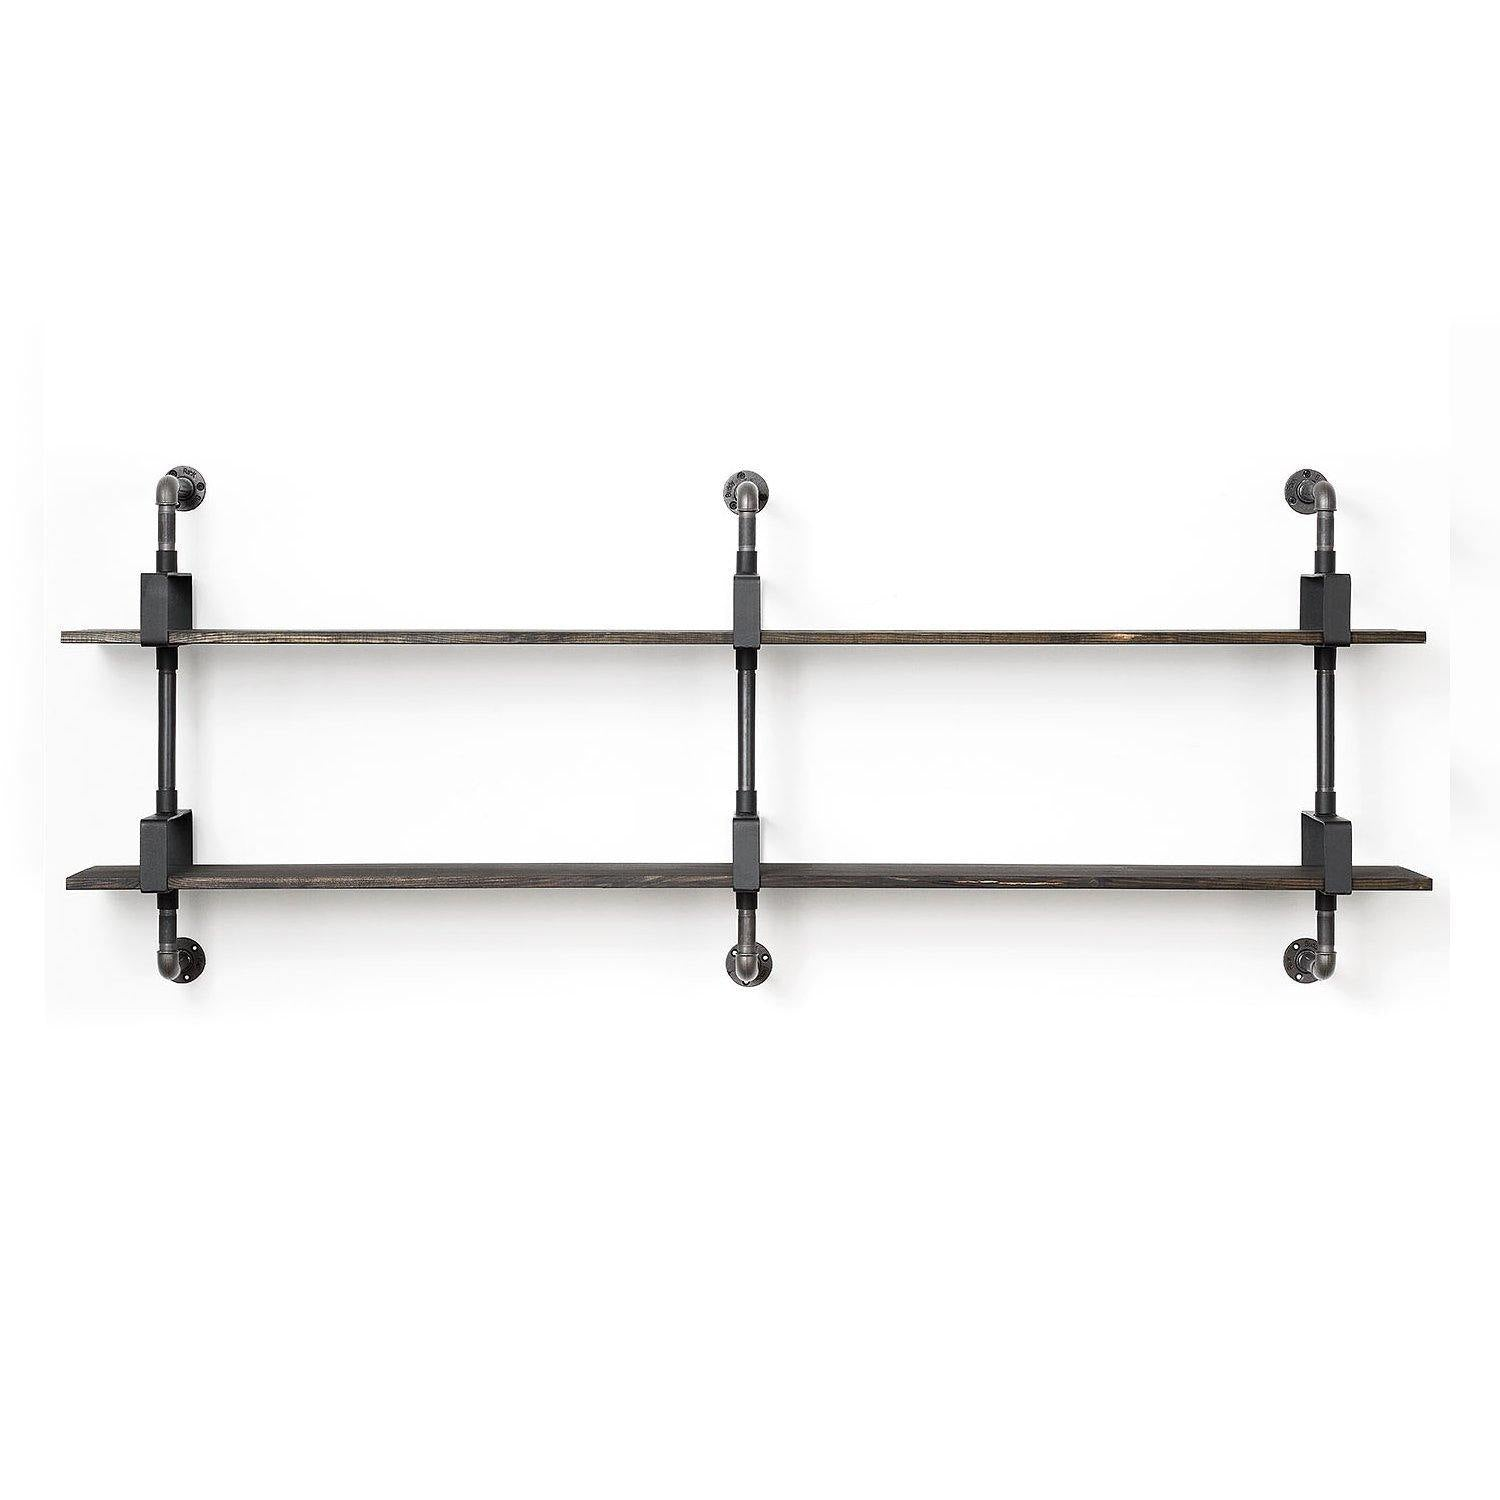 RackBuddy Shelfie - modular shelving system with 3 supports and two shelves